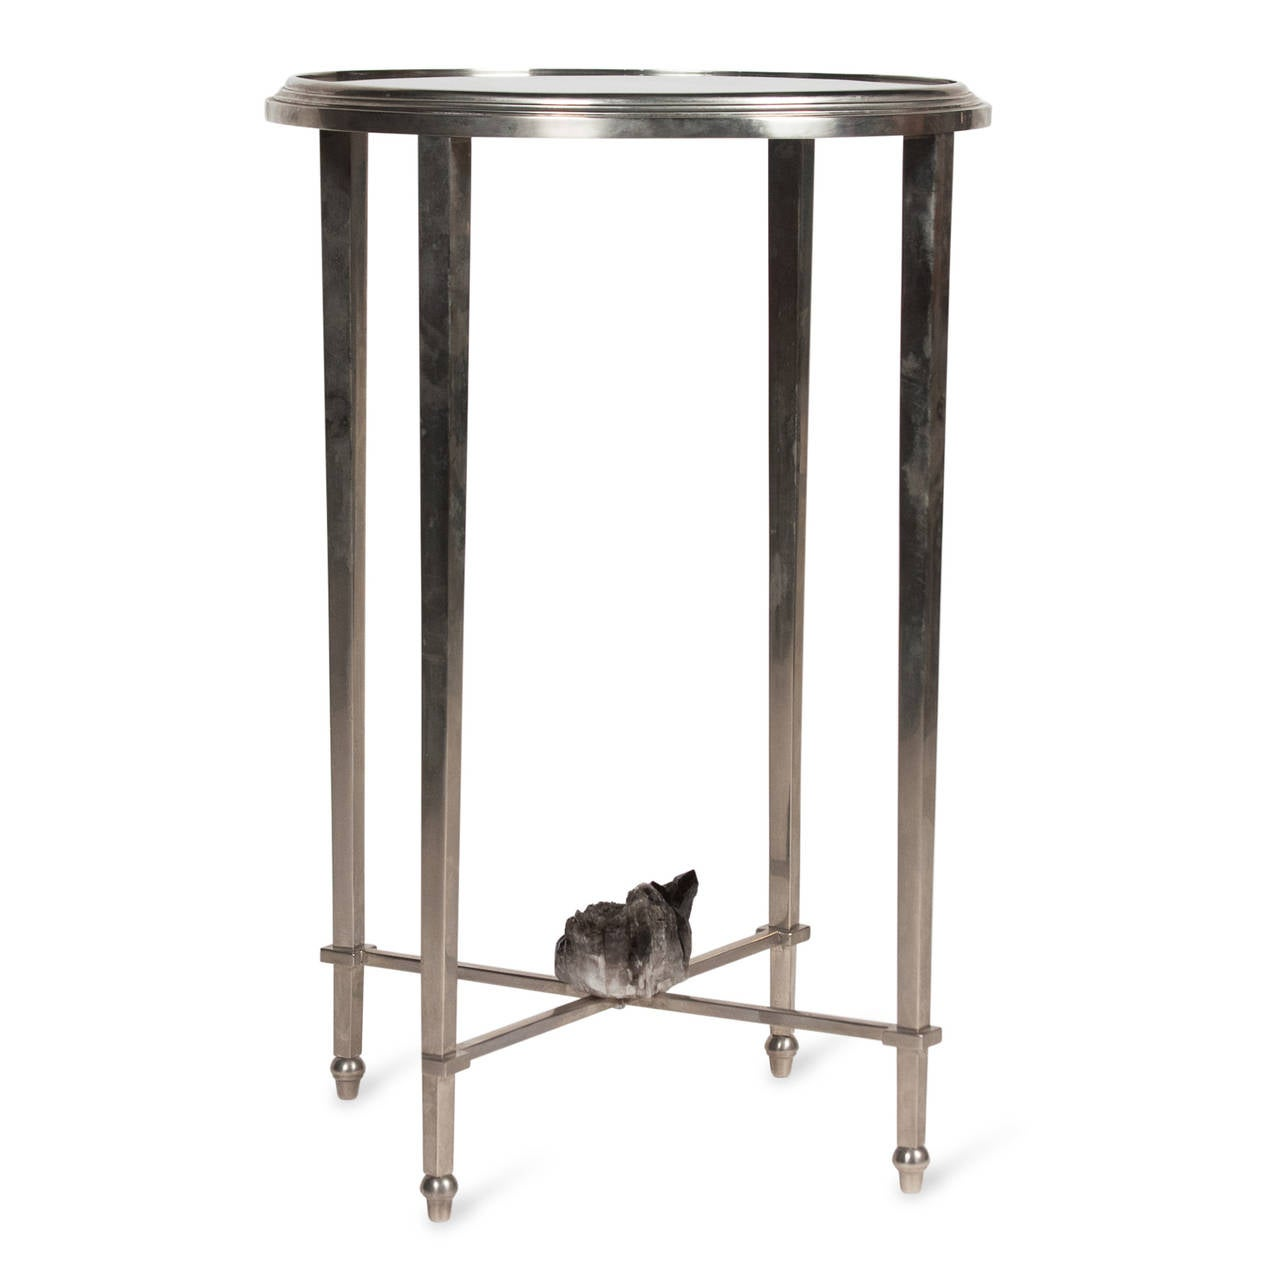 Geode mounted nickel end table french 1970s at 1stdibs for Geode side table